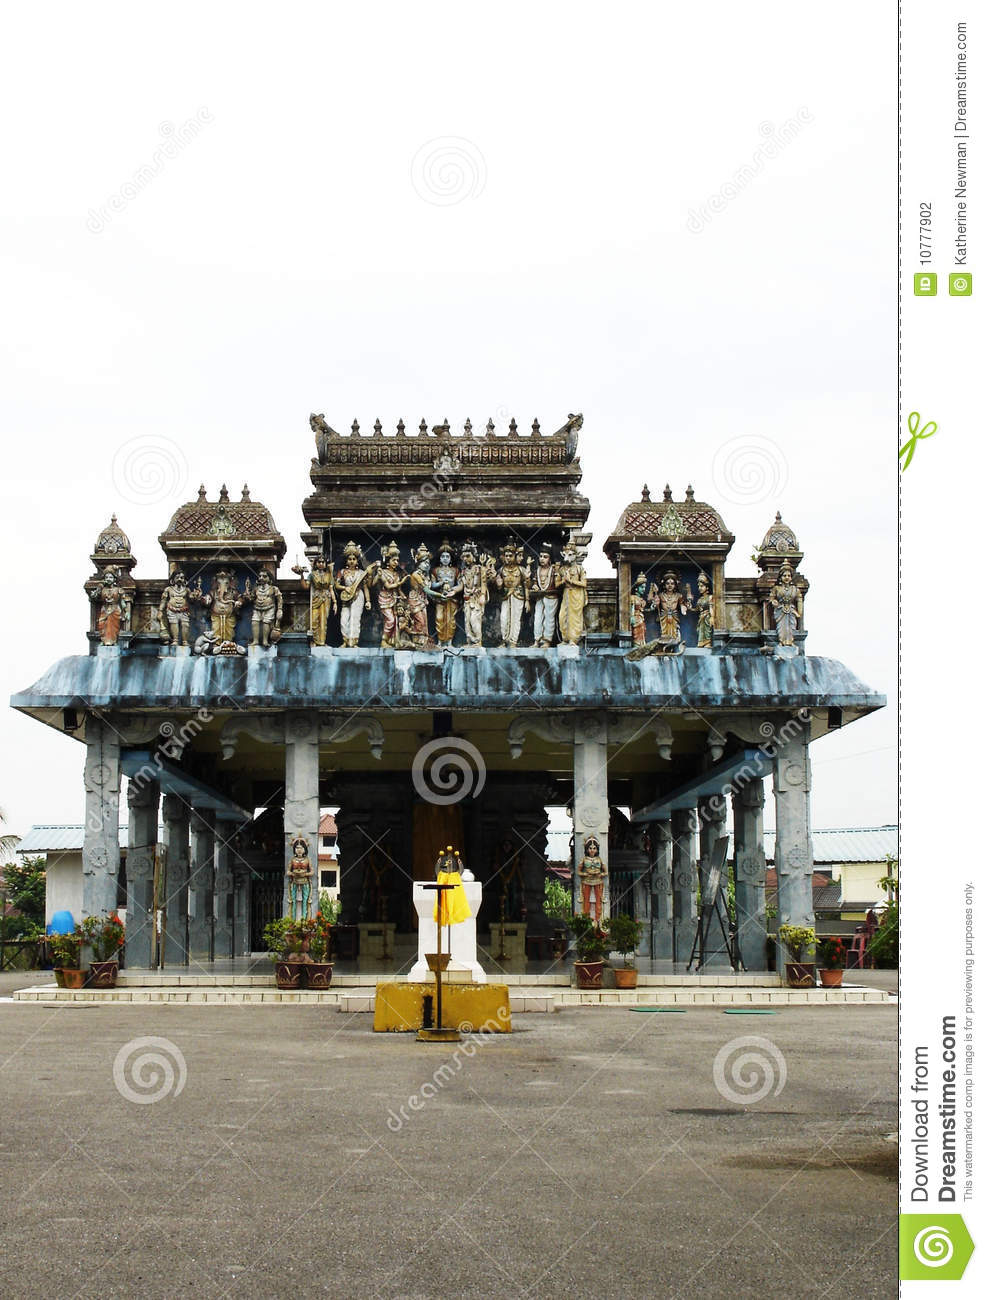 Hindoese Tempel in Borneo, Maleisië